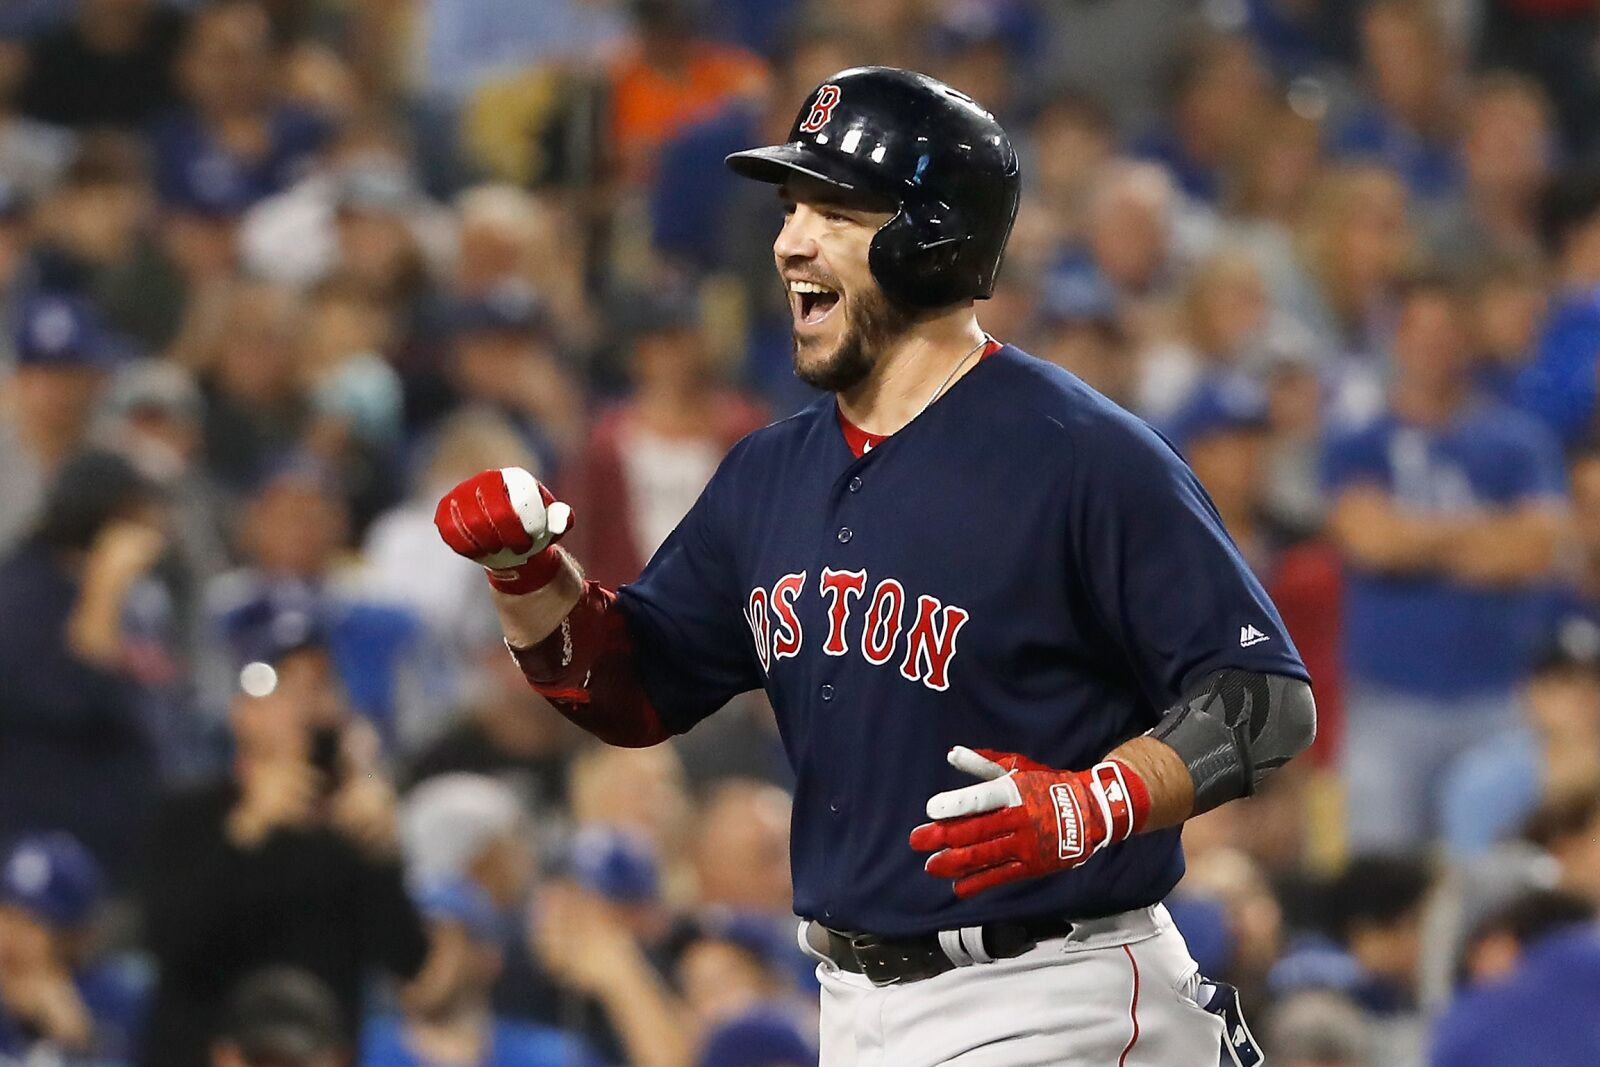 Red Sox re-sign first basemen Steve Pearce to one-year deal